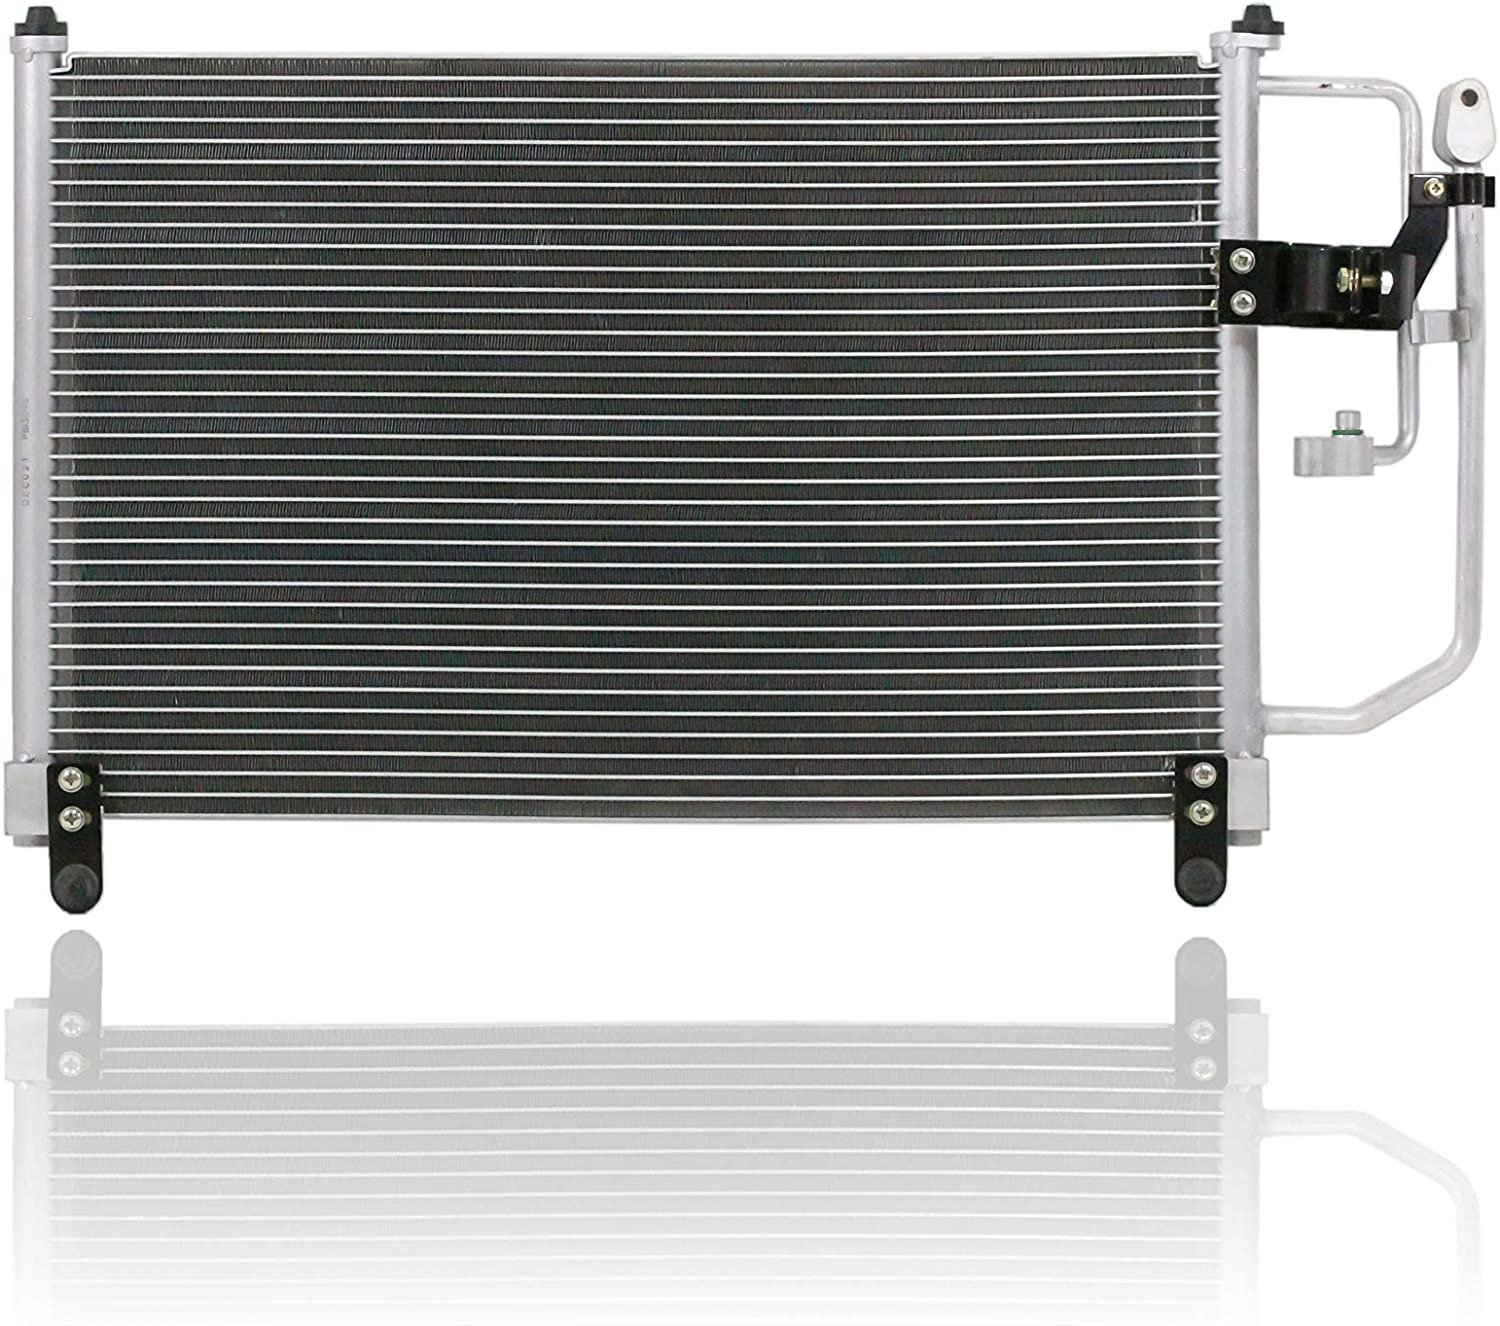 A-C Condenser For//Fit 99-00 Mazda Miata Without Drier PACIFIC BEST INC NC1061480B